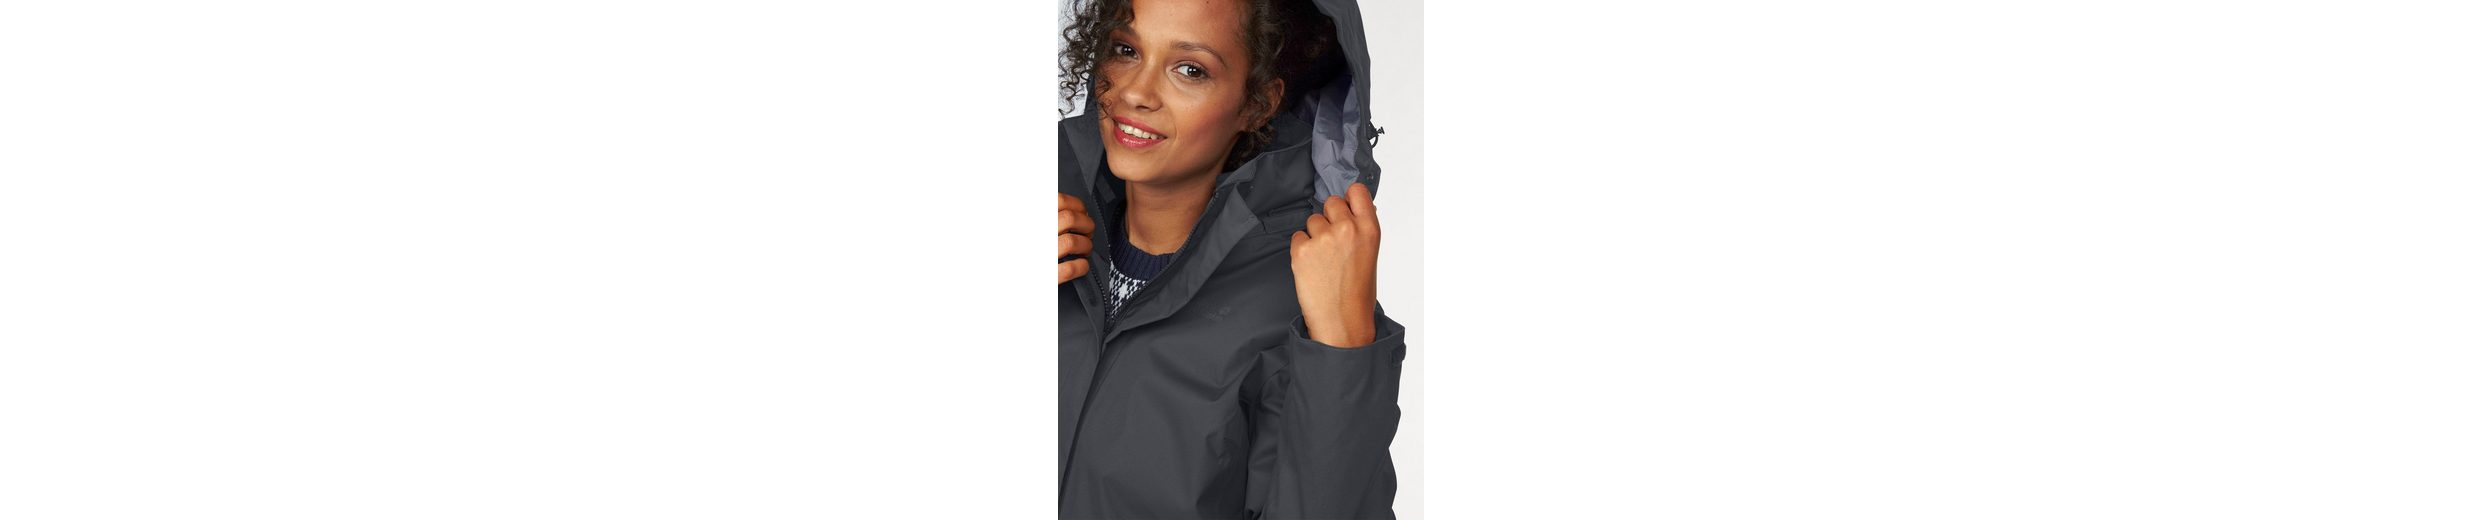 Jack Wolfskin 3-in-1-Funktionsjacke 3in1 ROSS ICE JACKET (Set, 2 tlg), aus wasser- & winddichtem Obermaterial